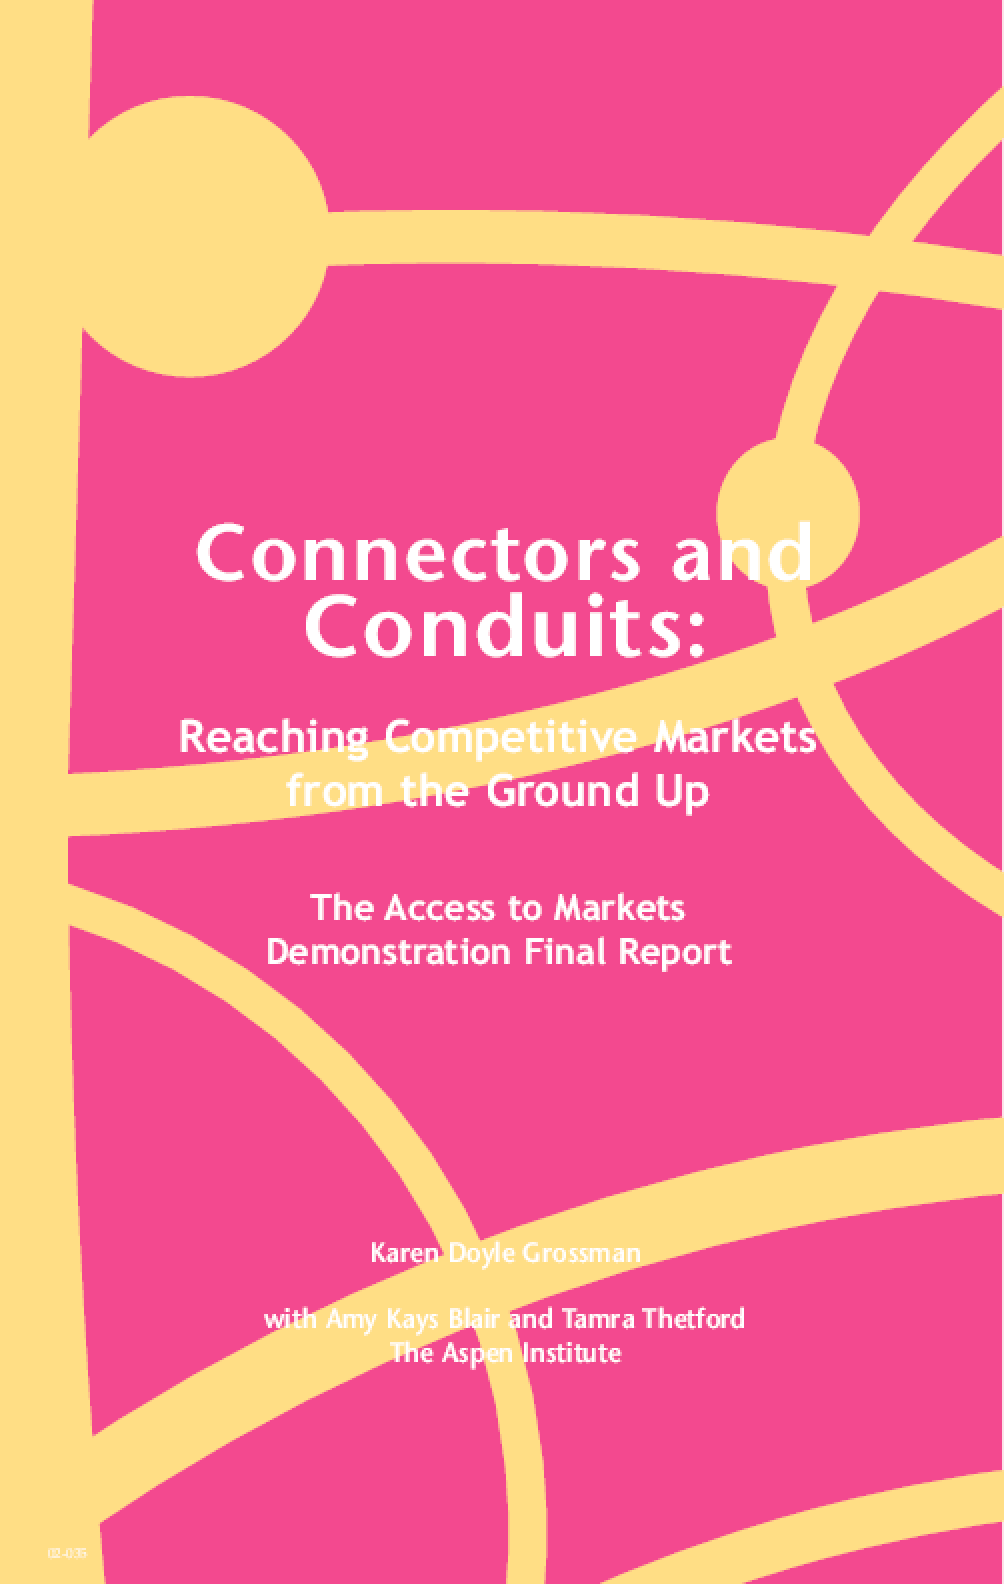 Connectors and Conduits: Reaching Competitive Markets from the Ground Up: The Access to Markets Demonstration Final Report